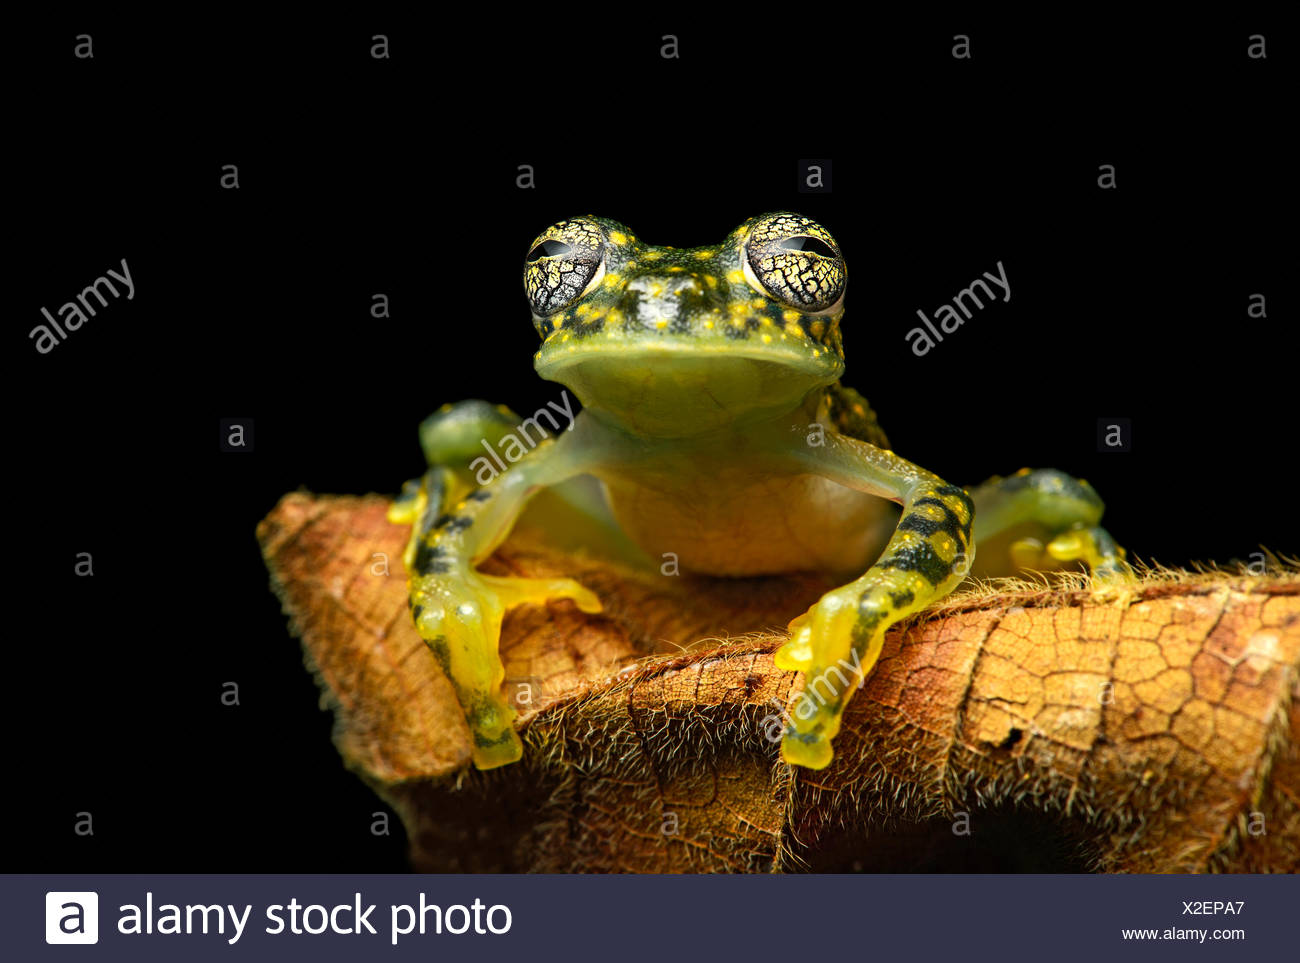 White-spotted Cochran Frog (Sachatamia albamoculata) sitting on leaf, Choco rainforest, Canande River Nature Reserve, Ecuador - Stock Image